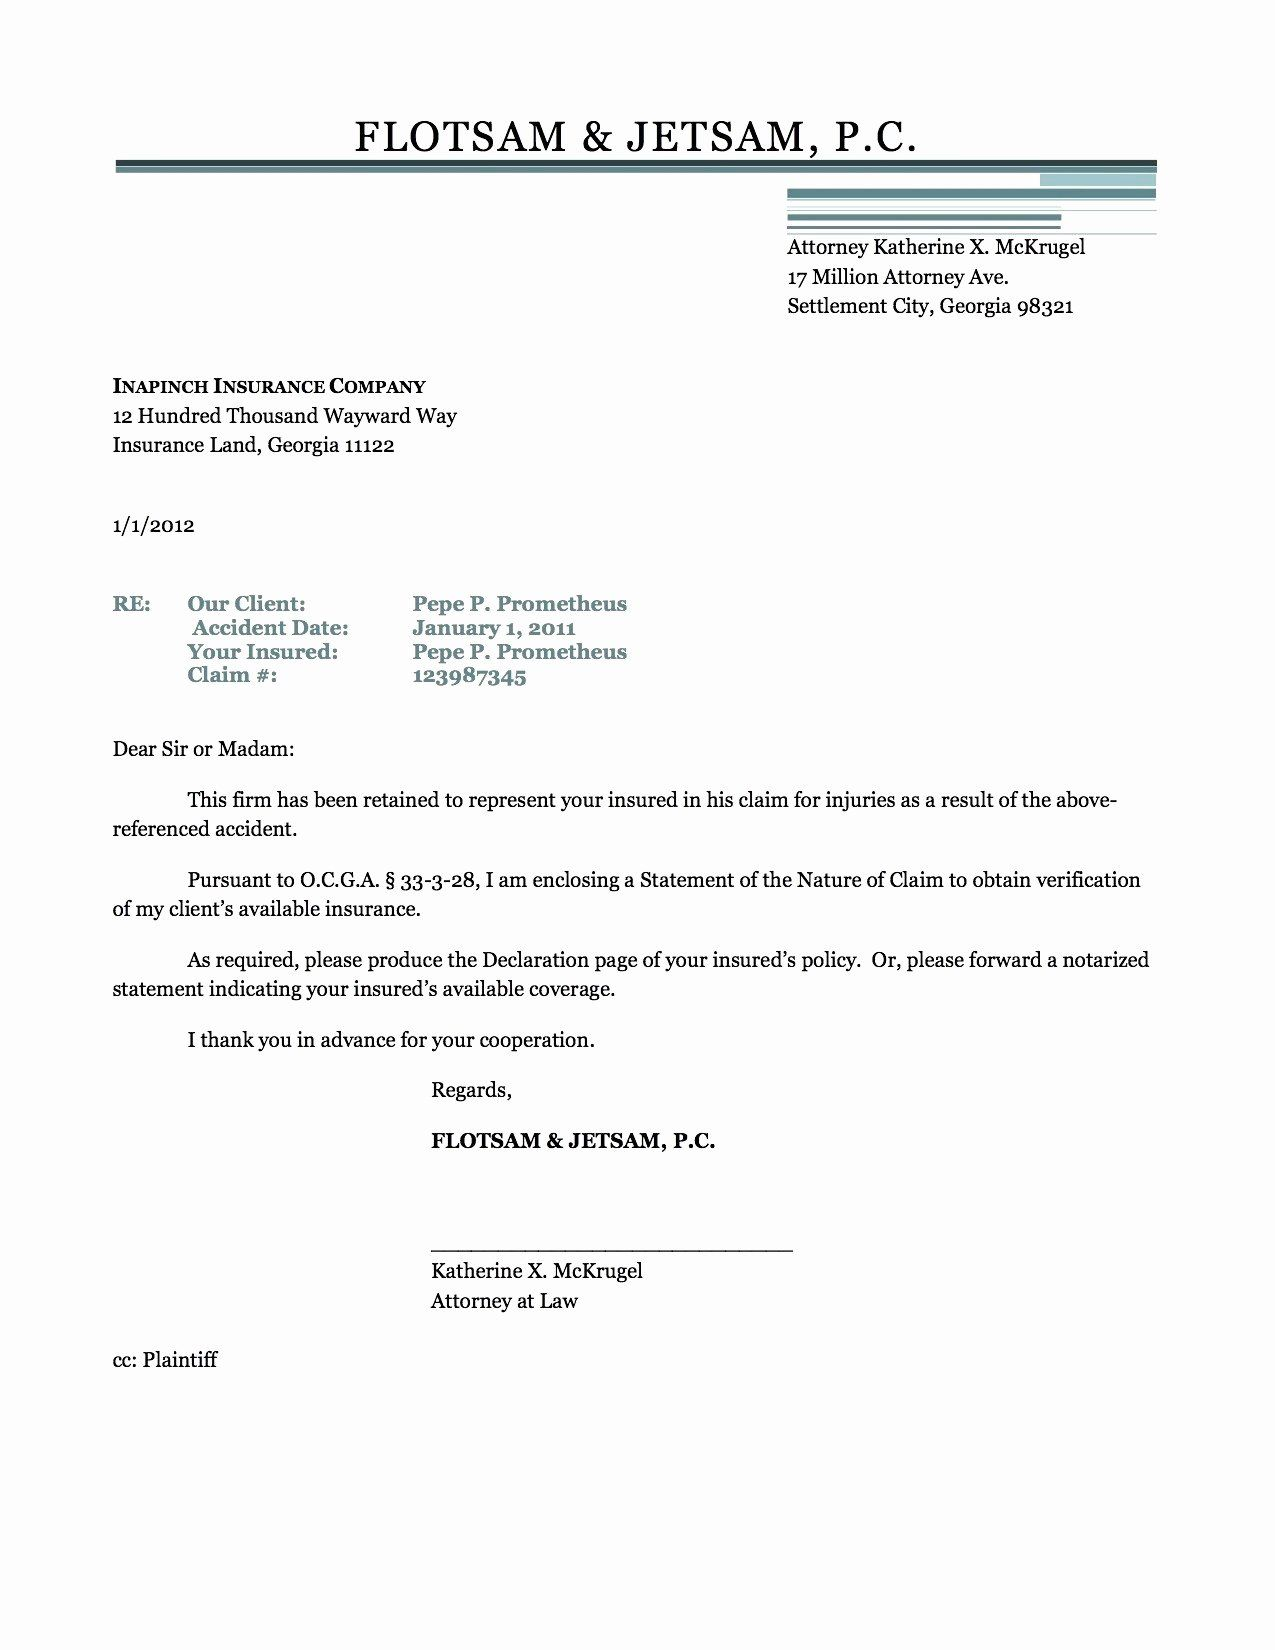 Personal Injury Demand Letter Template In 2020 Letter Templates